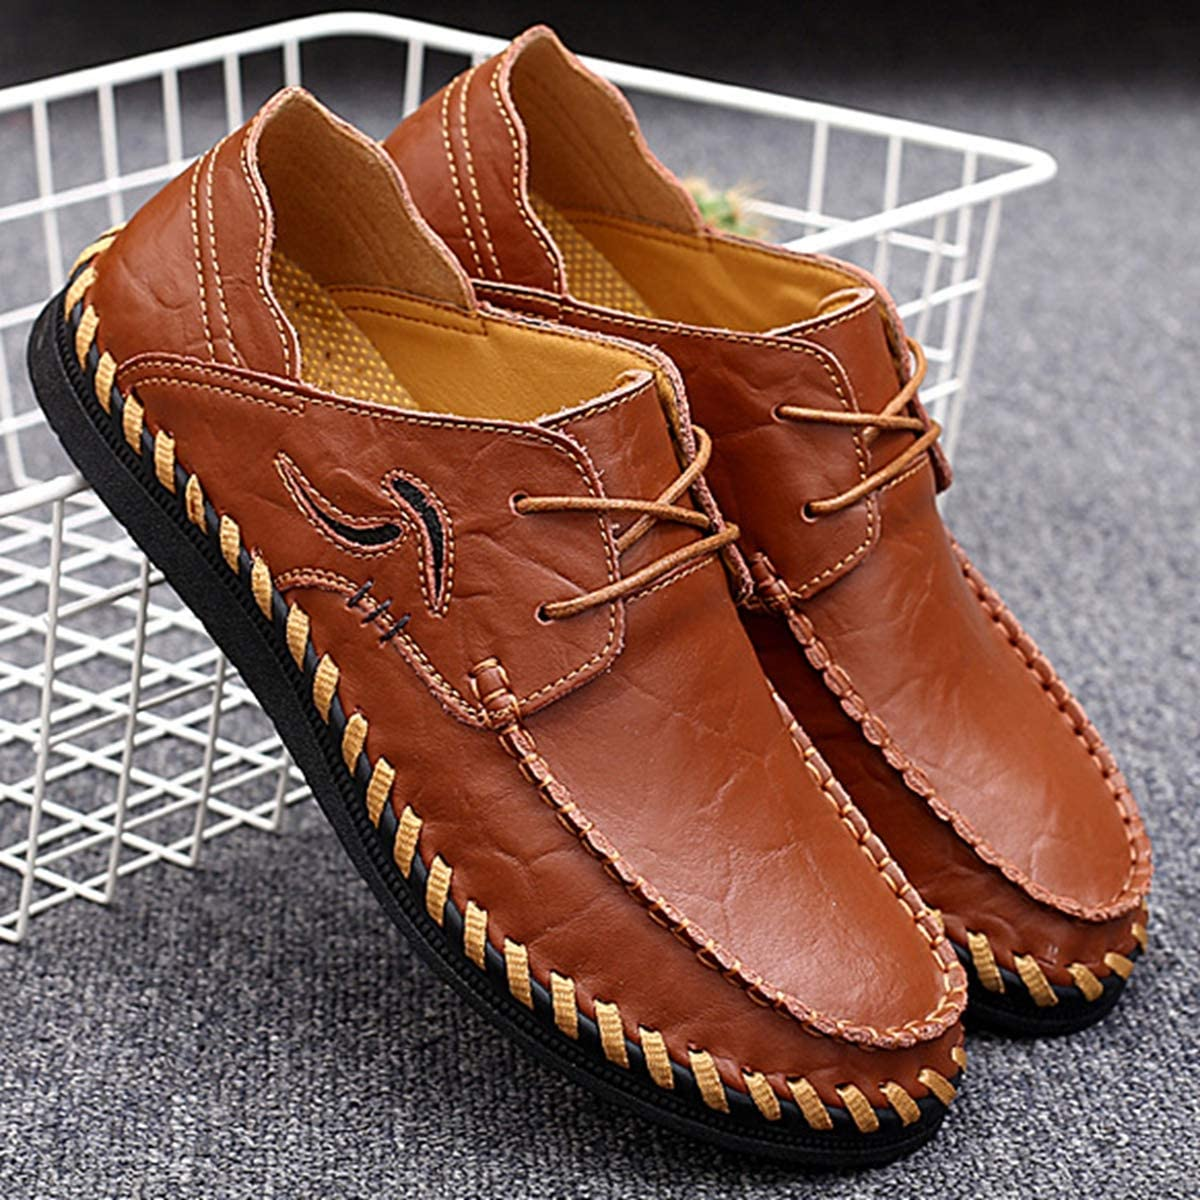 FOXSENSE Casual Outdoor Premium Genuine Leather Breathable Walking Shoes Loafers for Man